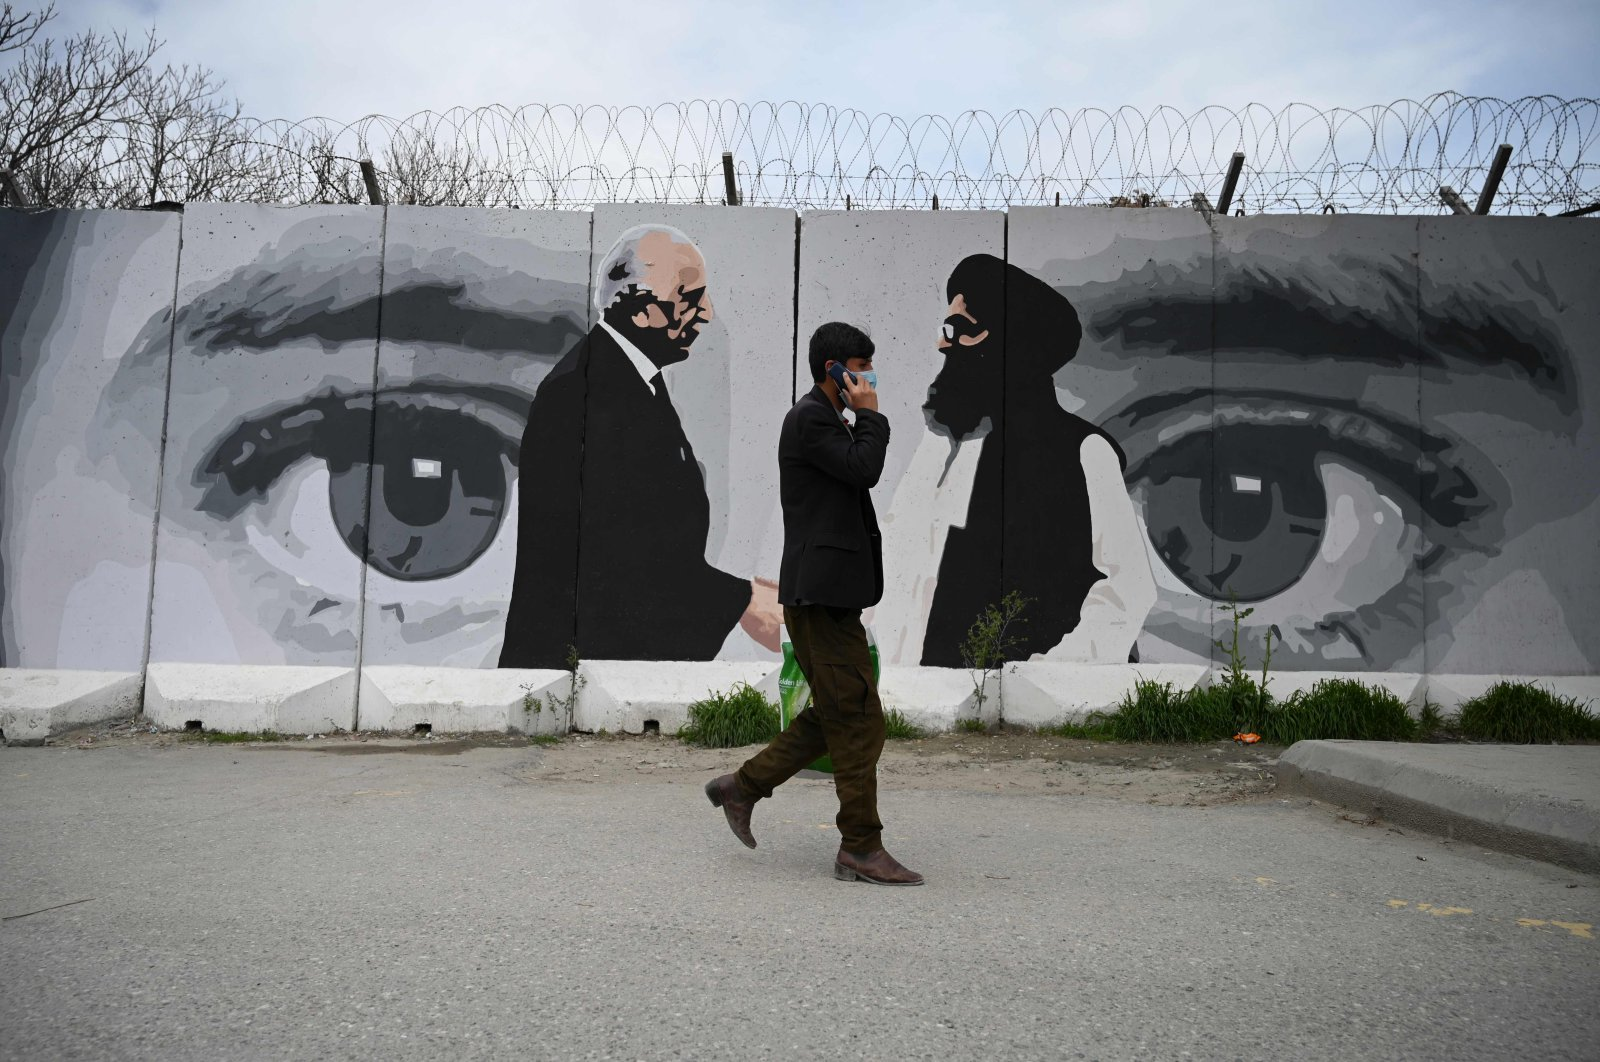 A man wearing a face mask walks past a wall painted with images of U.S. Special Representative for Afghanistan Reconciliation Zalmay Khalilzad (L) and Taliban co-founder Mullah Abdul Ghani Baradar (R), in Kabul, Sunday, April 5, 2020. (AFP Photo)